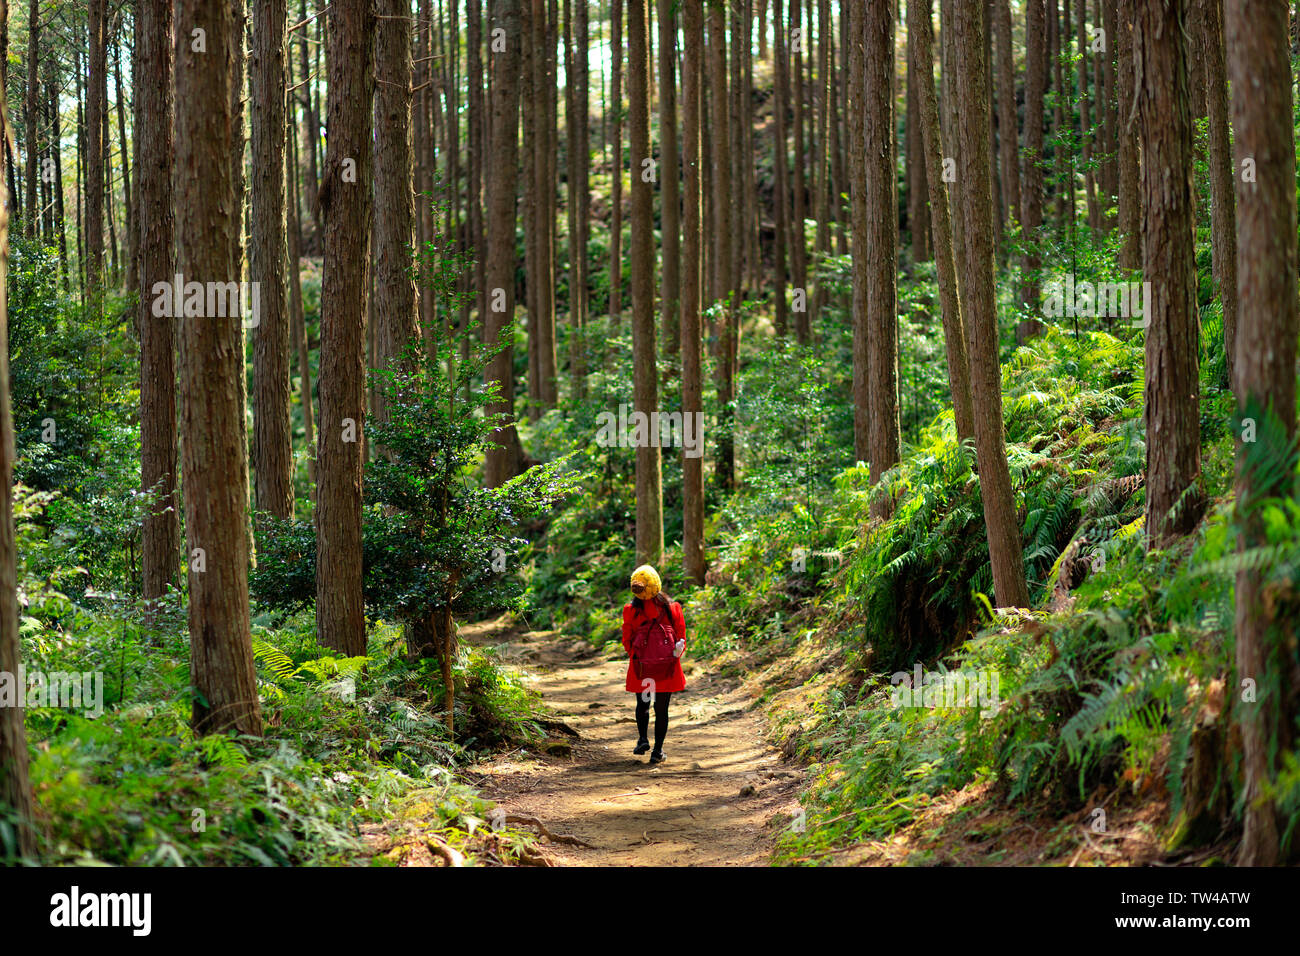 Woman in red coat, trekking in the Kumano Kodo forest, Japan - Stock Image